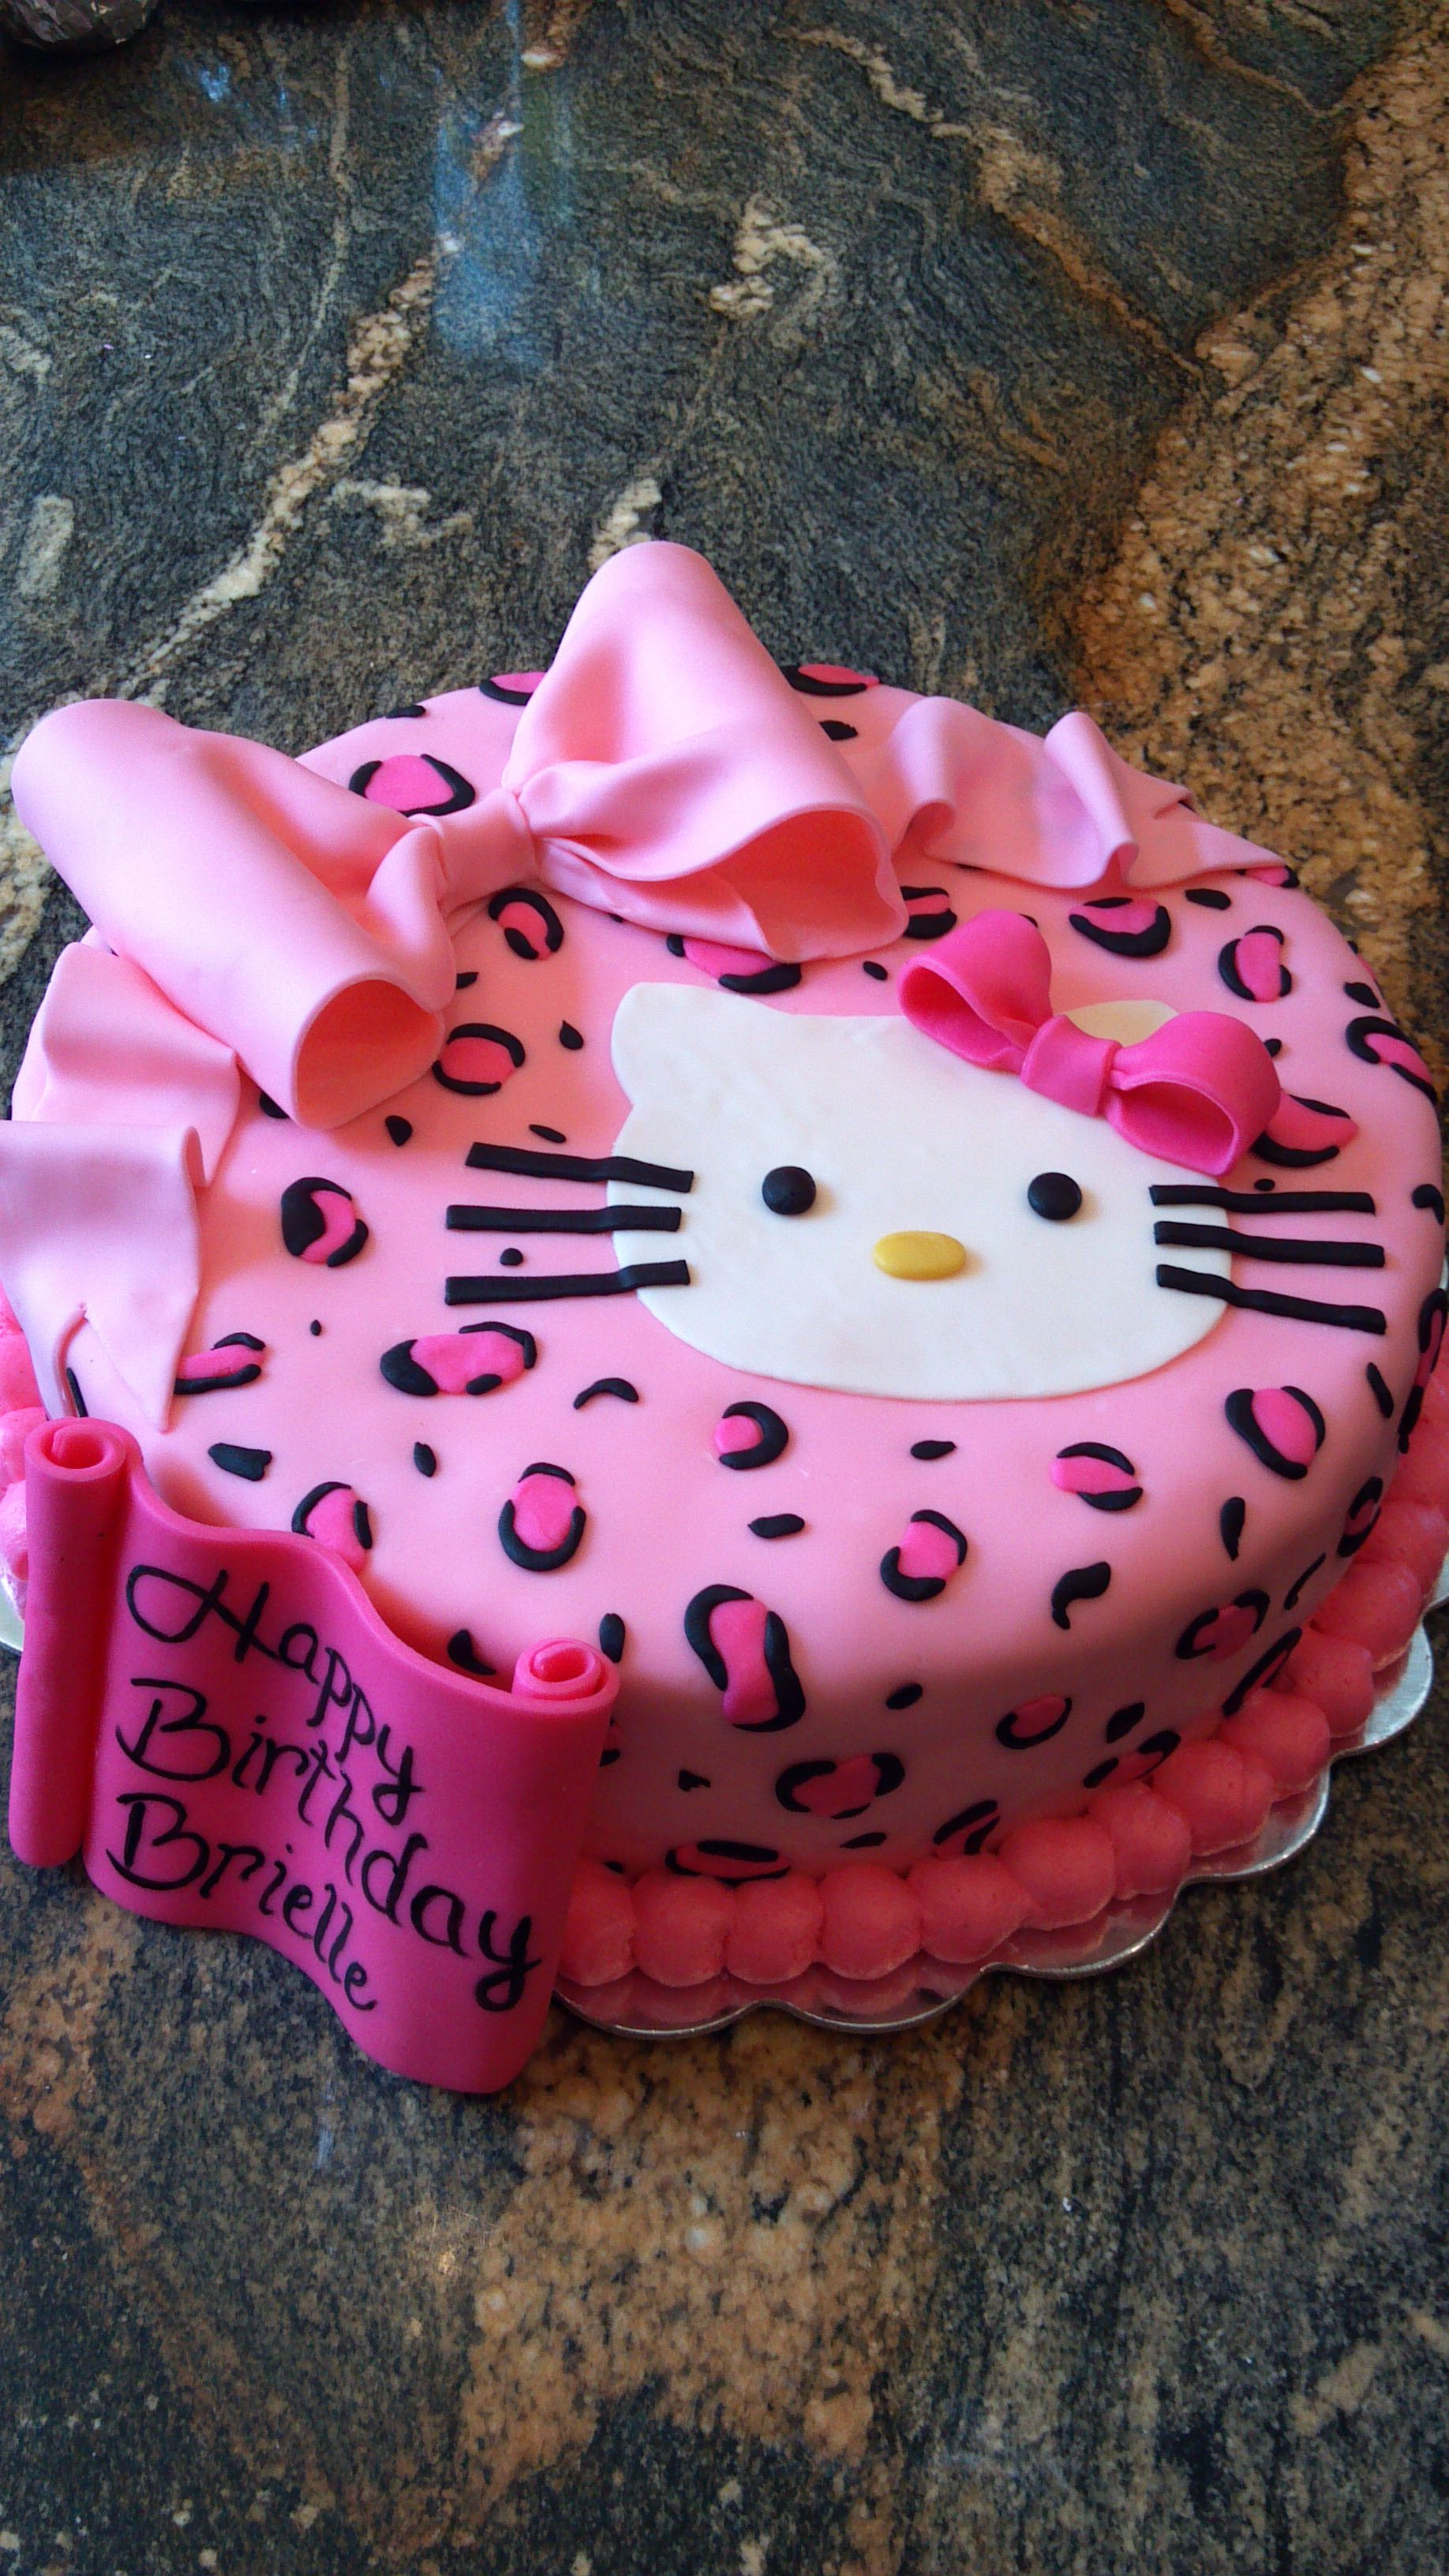 Best ideas about Birthday Cake For 3 Years Old Girl . Save or Pin Birthday cake I did for a 3 yr old little girl Now.